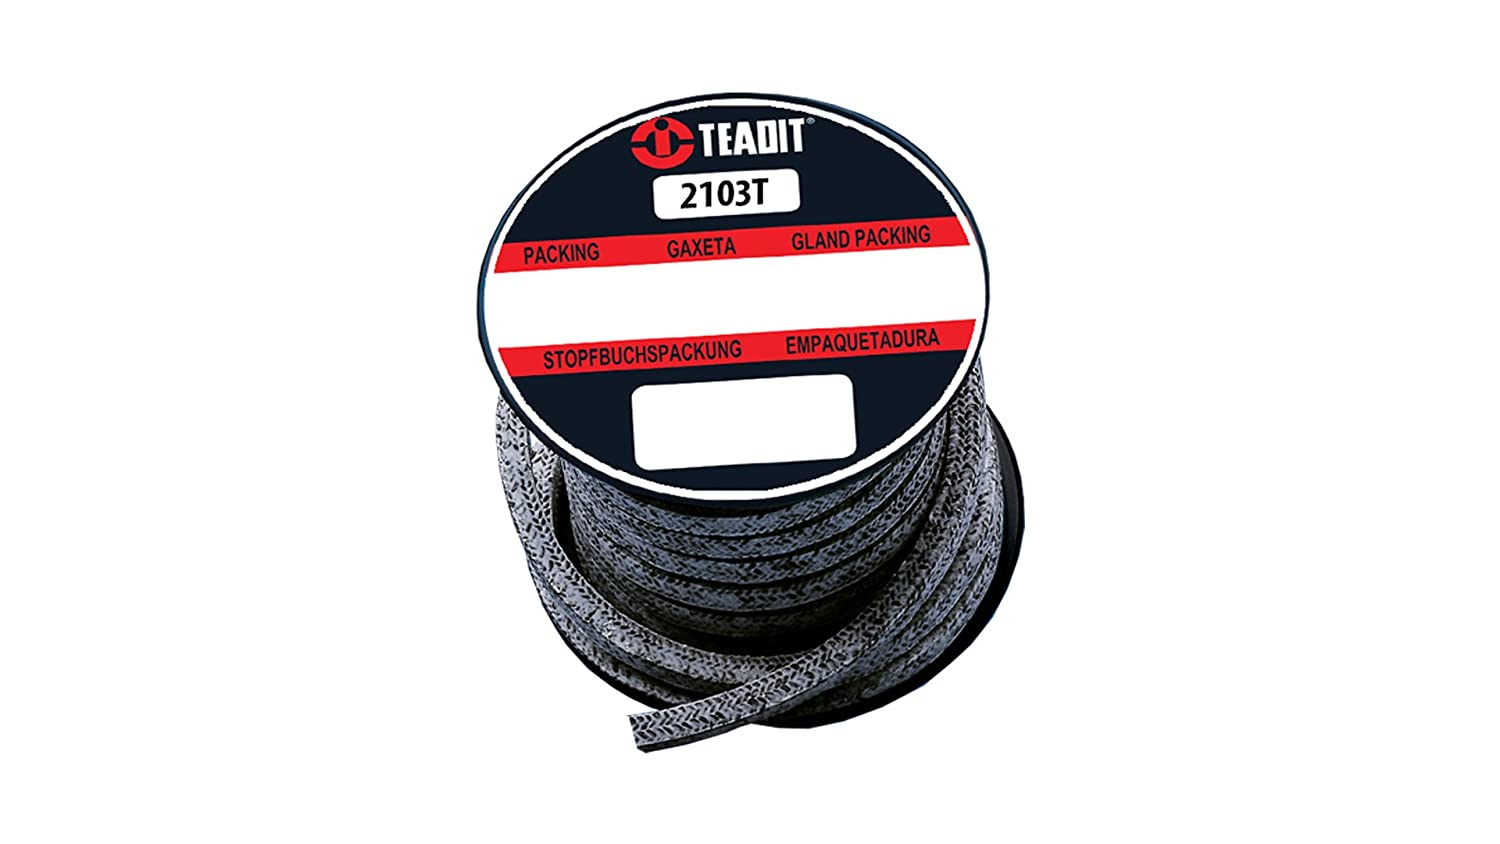 Spool Spool 7//8 CS x 1 lb 7//8 CS x 1 lb PTFE Impregnated Sterling Seal and Supply STCC 2103T.875x1 2103T Teadit Style Braided Packing Carbon Yarn